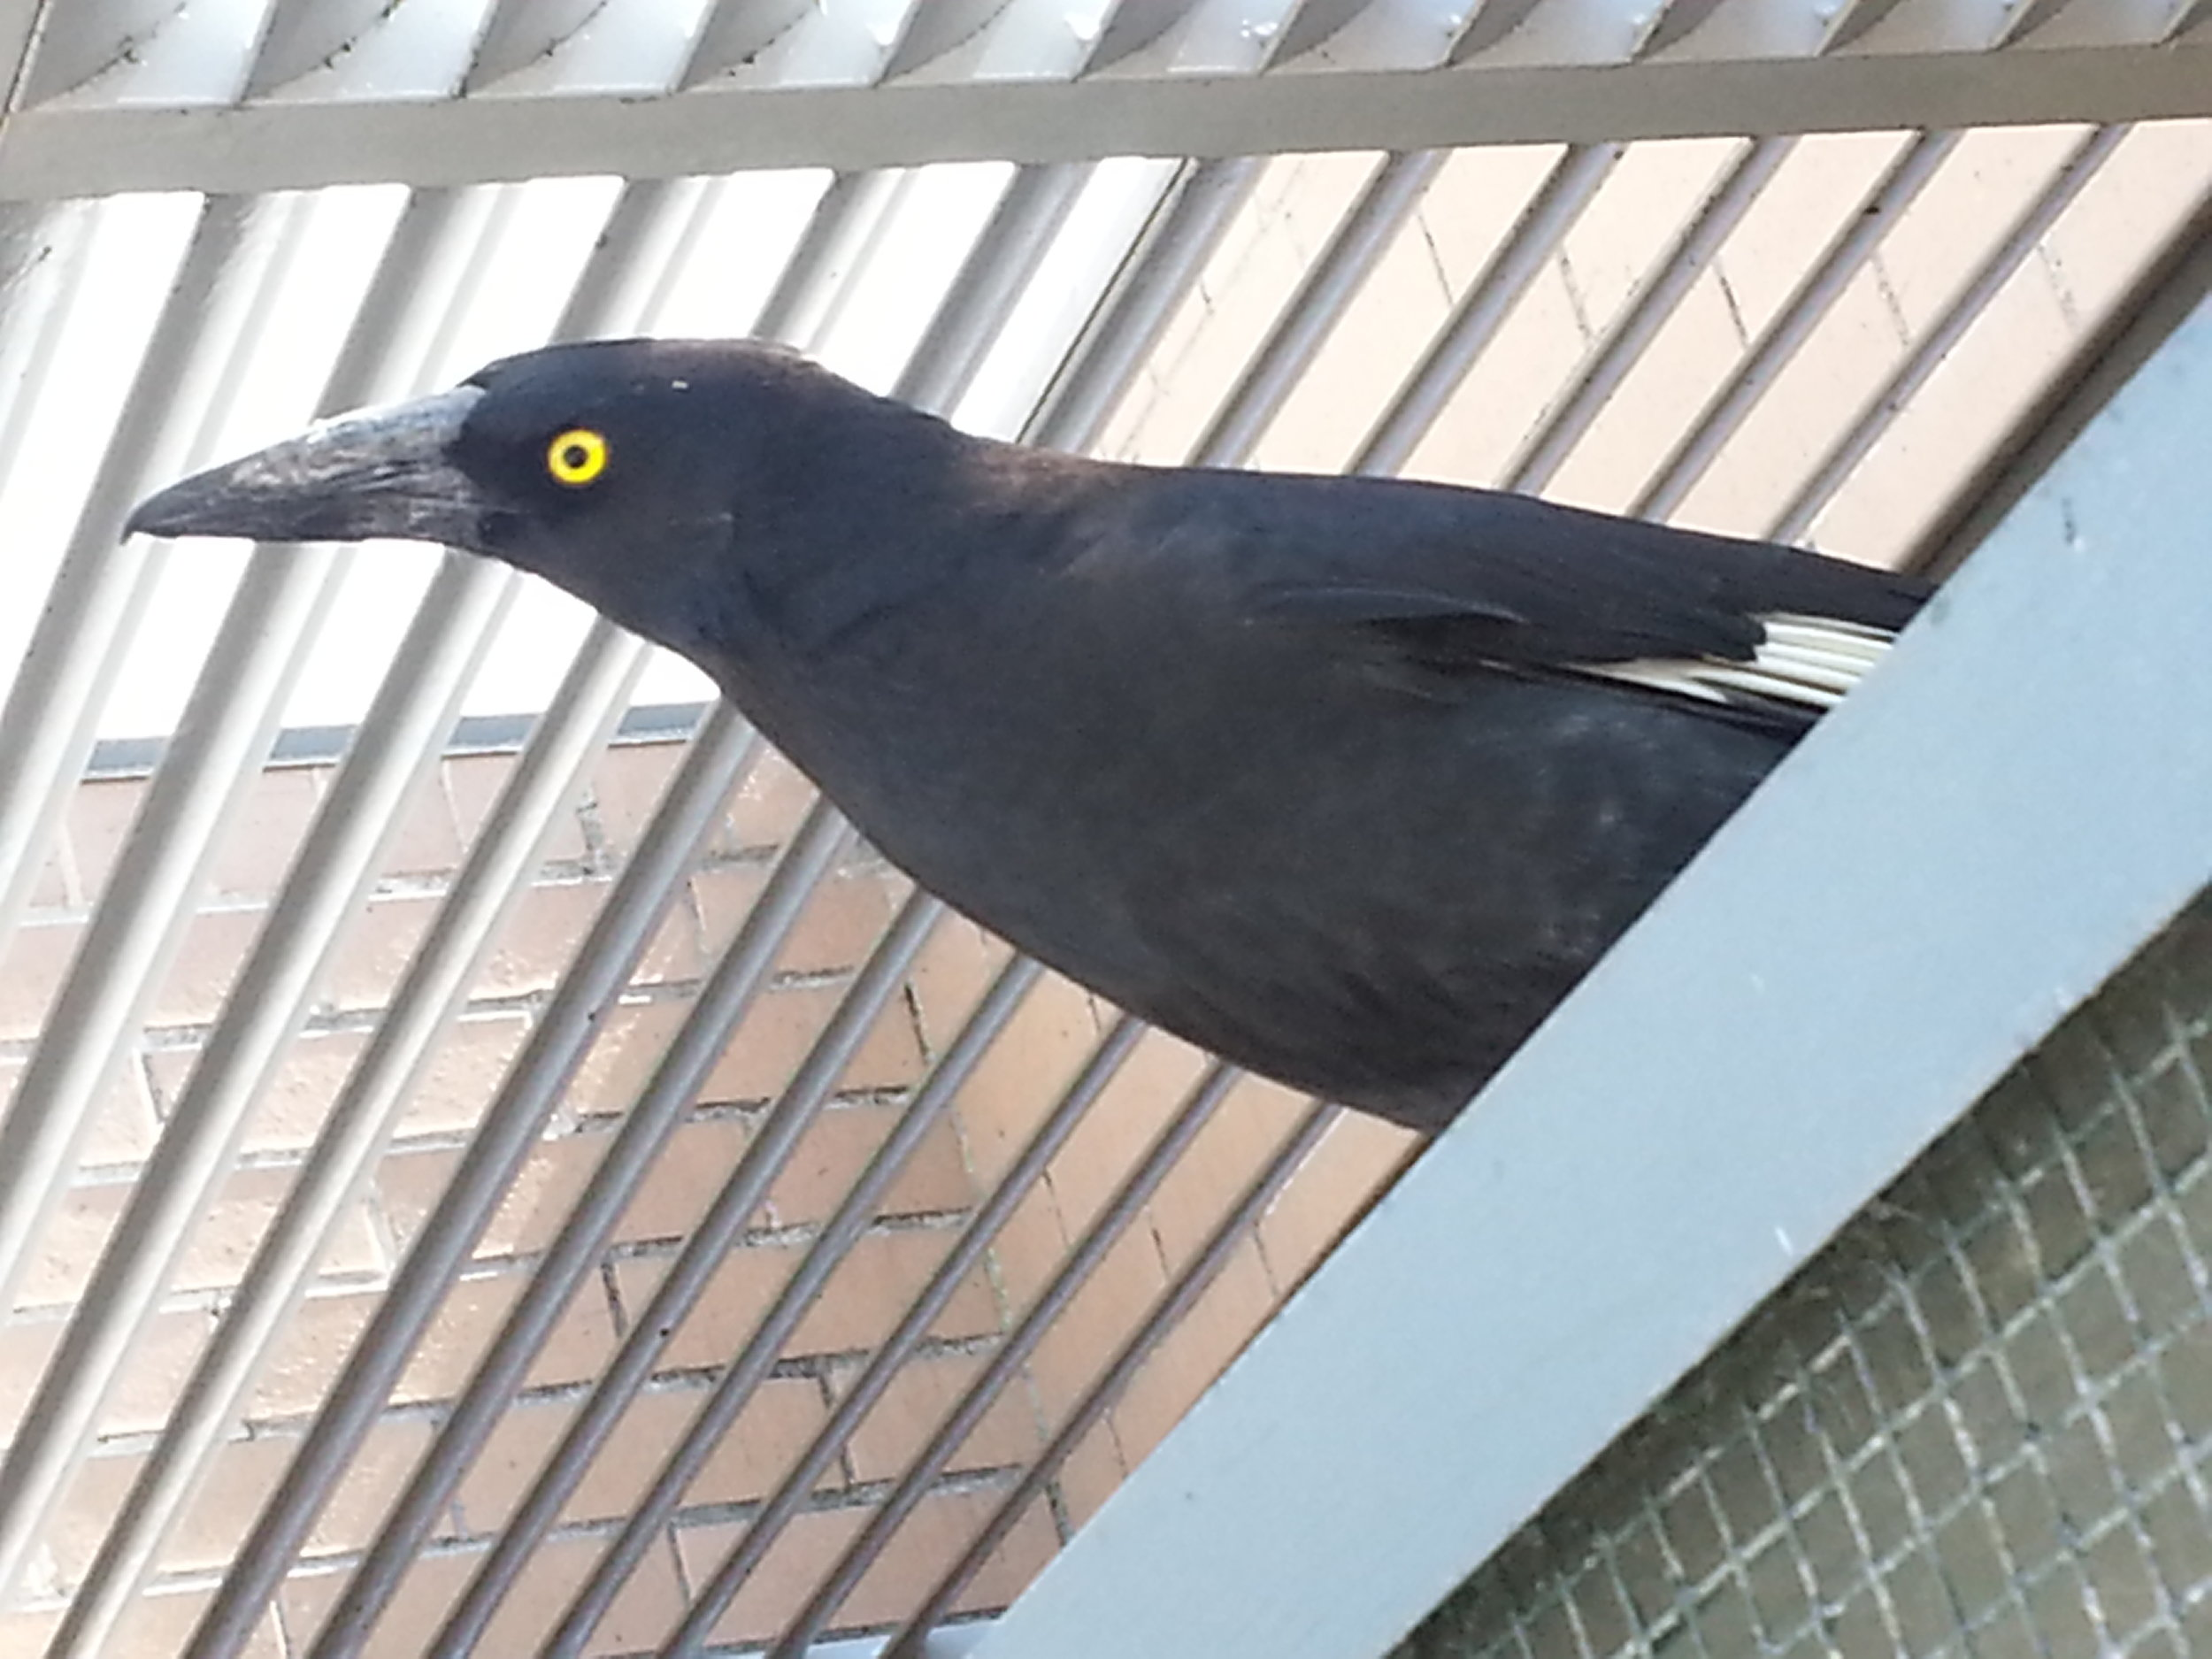 Currawong released earlier - he comes back to check on the juvenile currawongs in care in the aviary